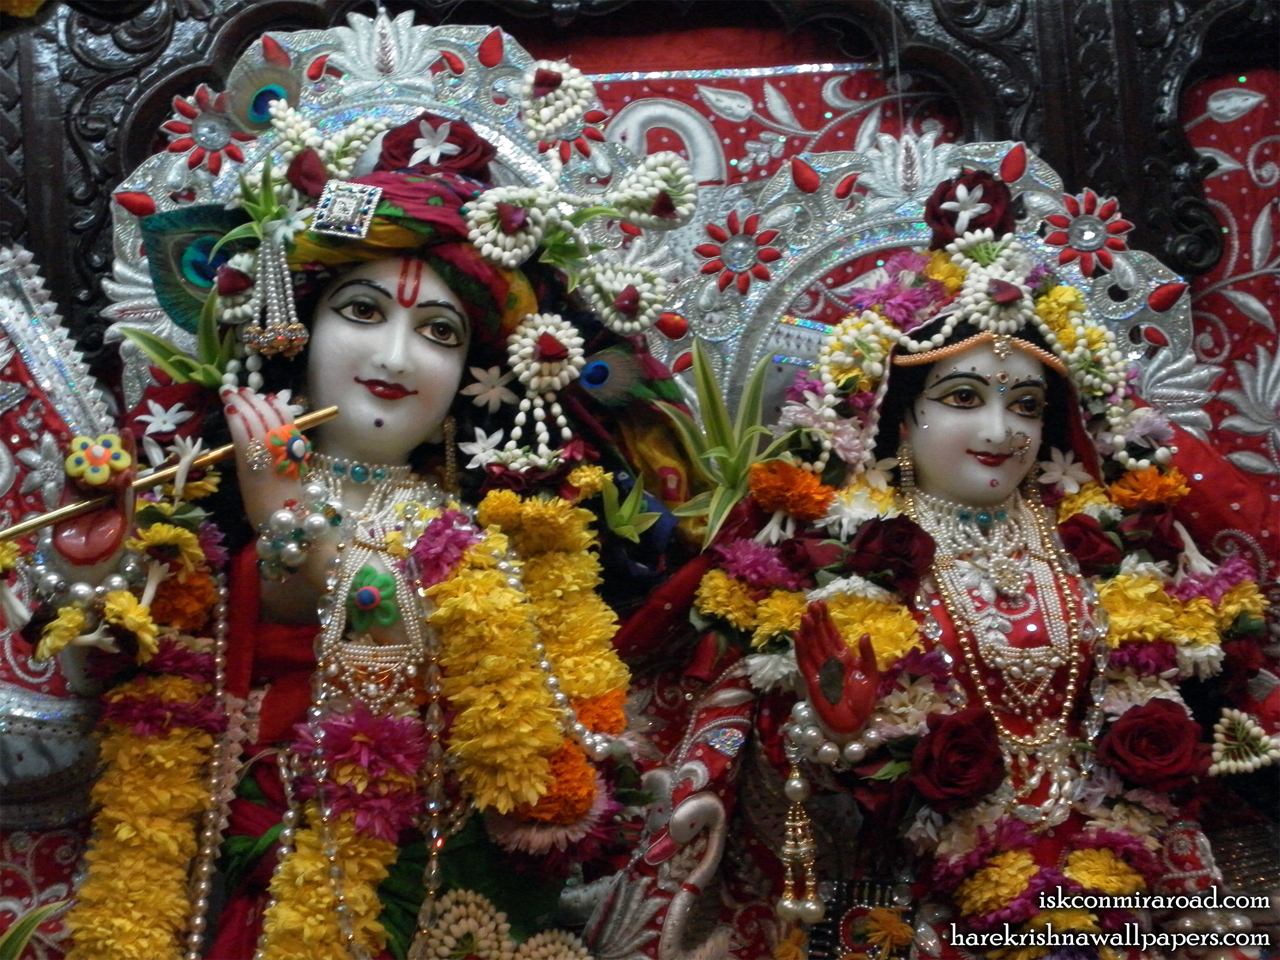 Sri Sri Radha Giridhari Close up Wallpaper (022) Size 1280x960 Download